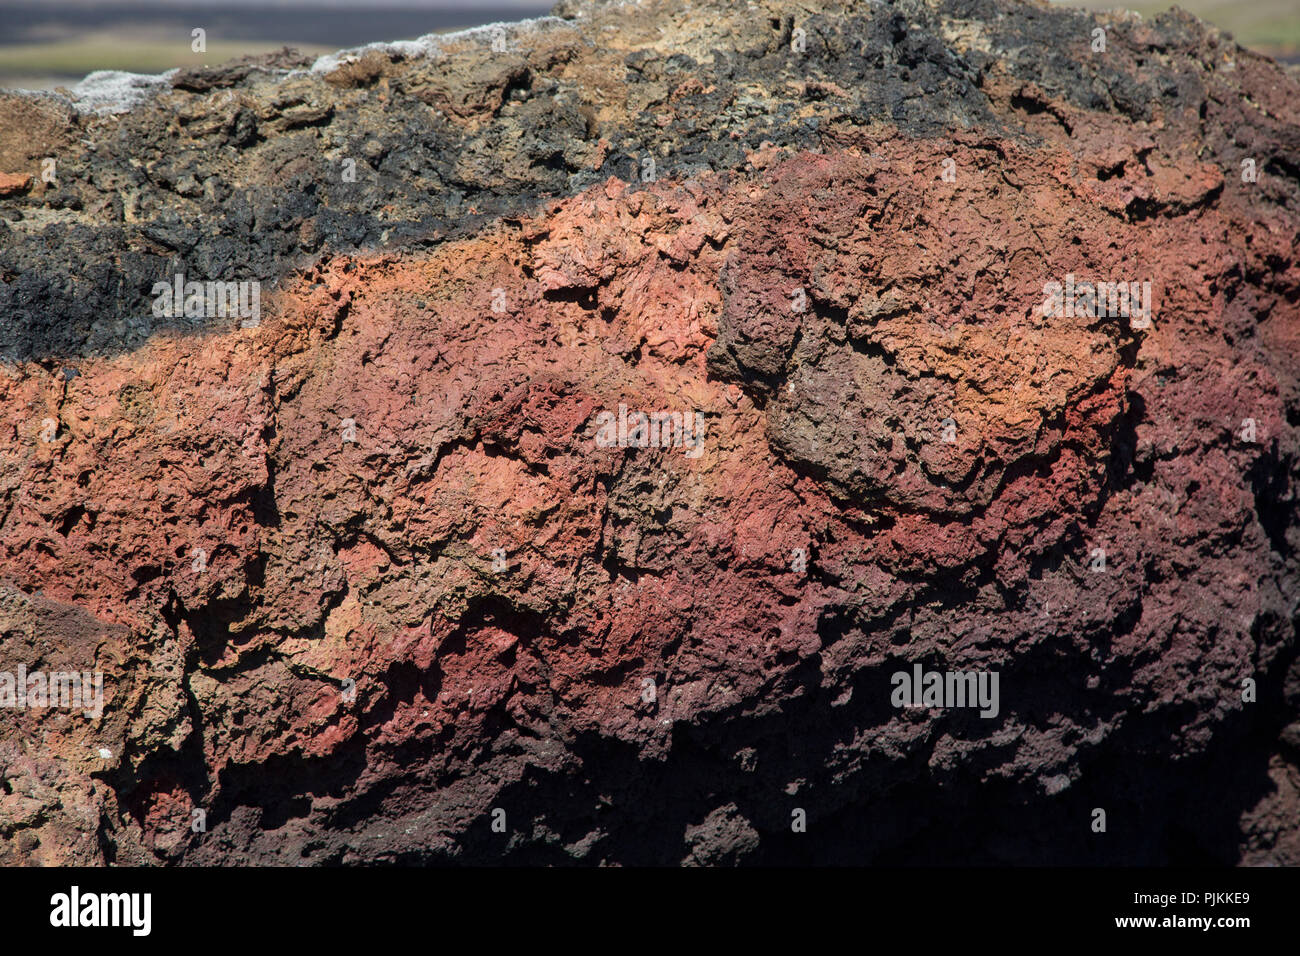 Iceland, Krafla district, cooled lava, detail, red, - Stock Image